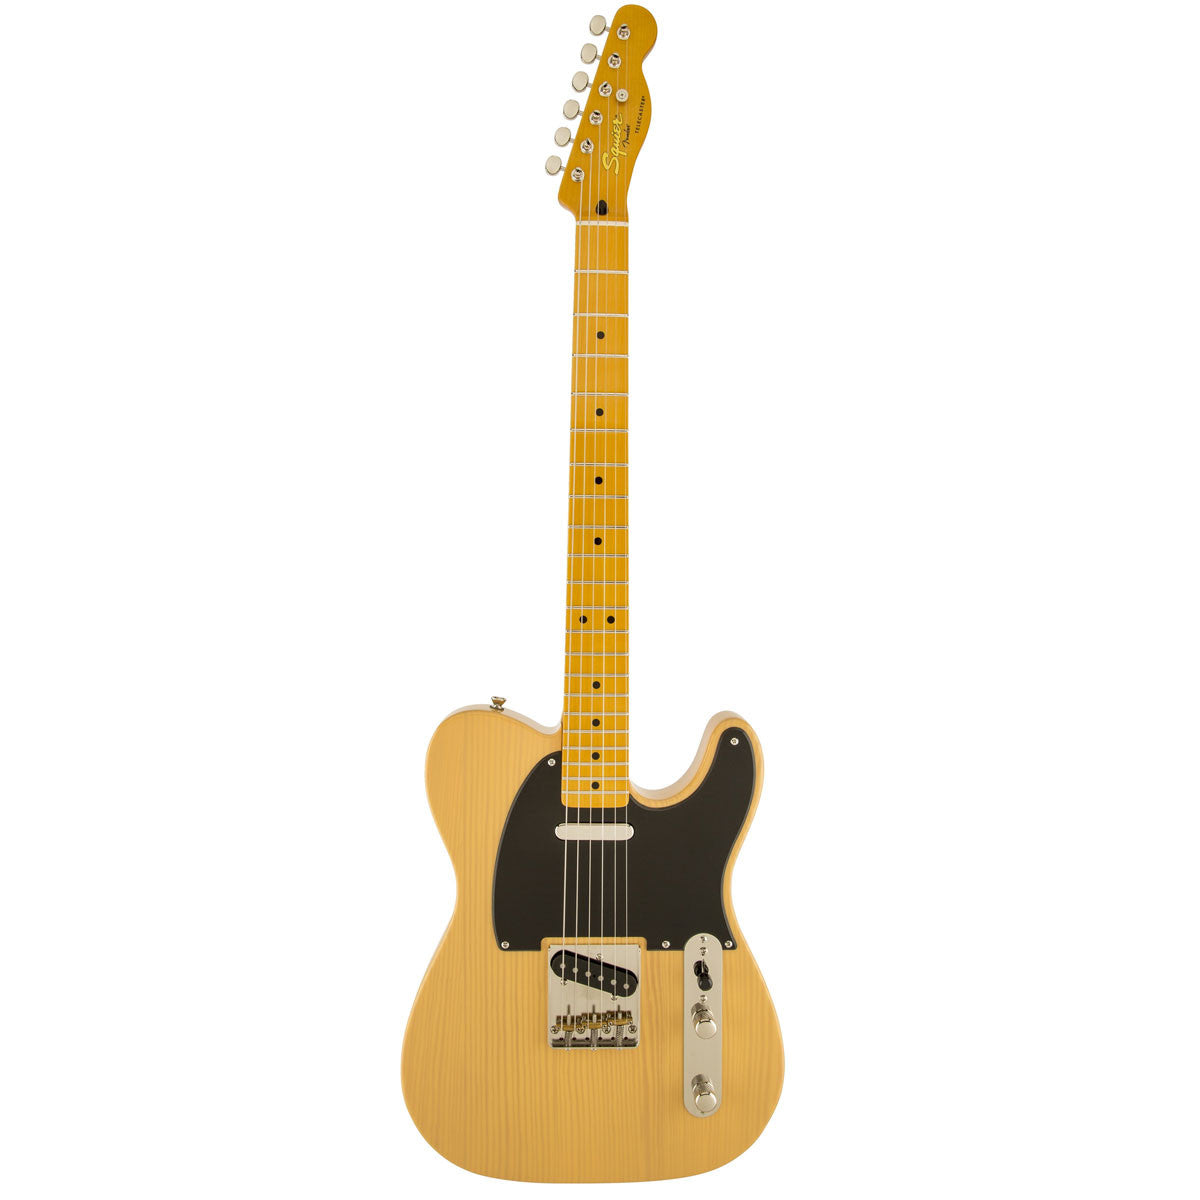 Squier Classic Vibe '50s Telecaster - Maple - Butterscotch Blonde - Vintage Guitar Boutique - 2